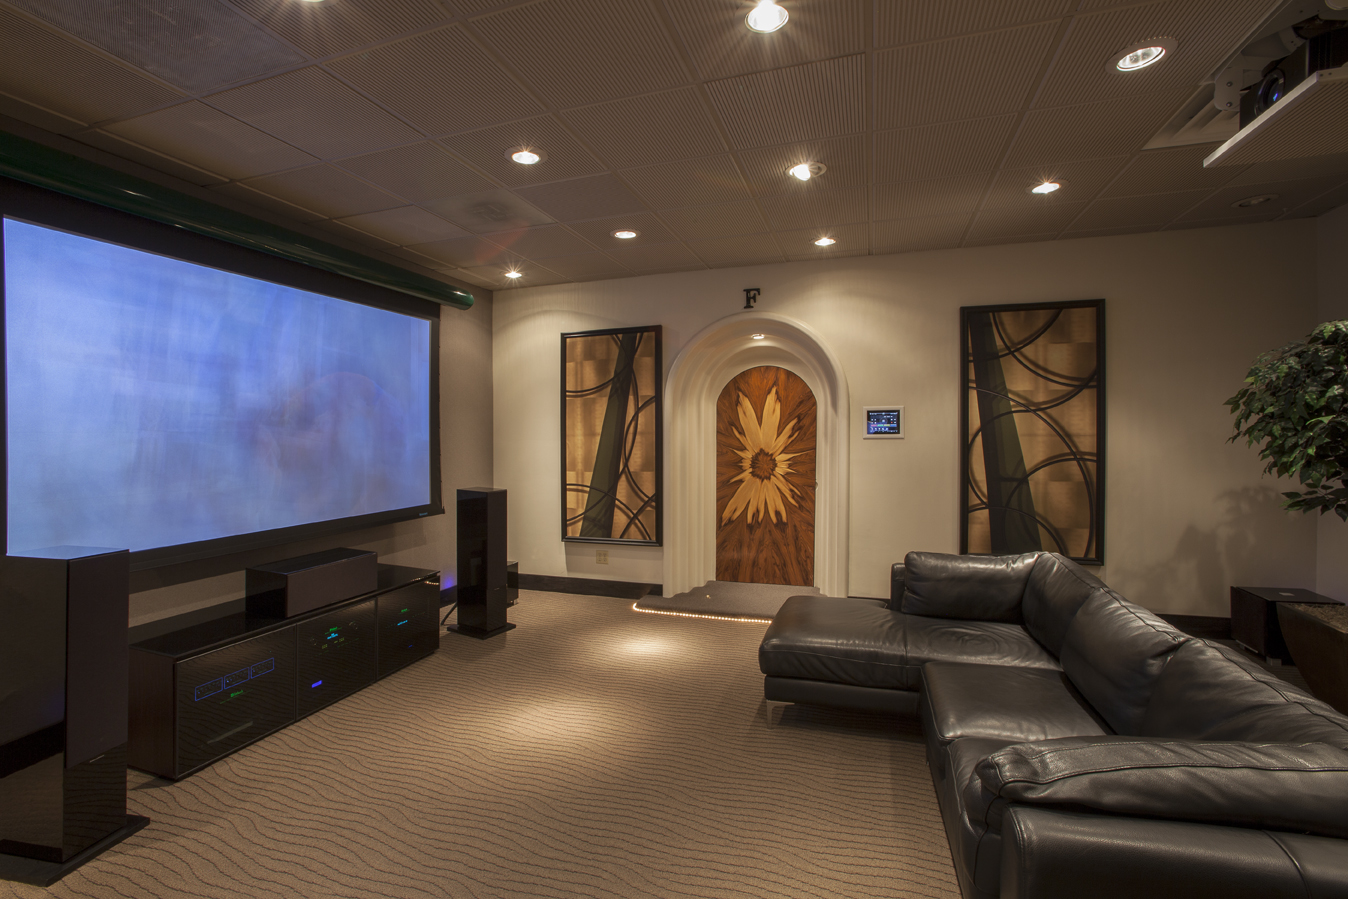 Living Room Theater Design Small Space Awesome Ideas With Comfortable Black Sofas And Cool Large Sreen Great Home For Modern